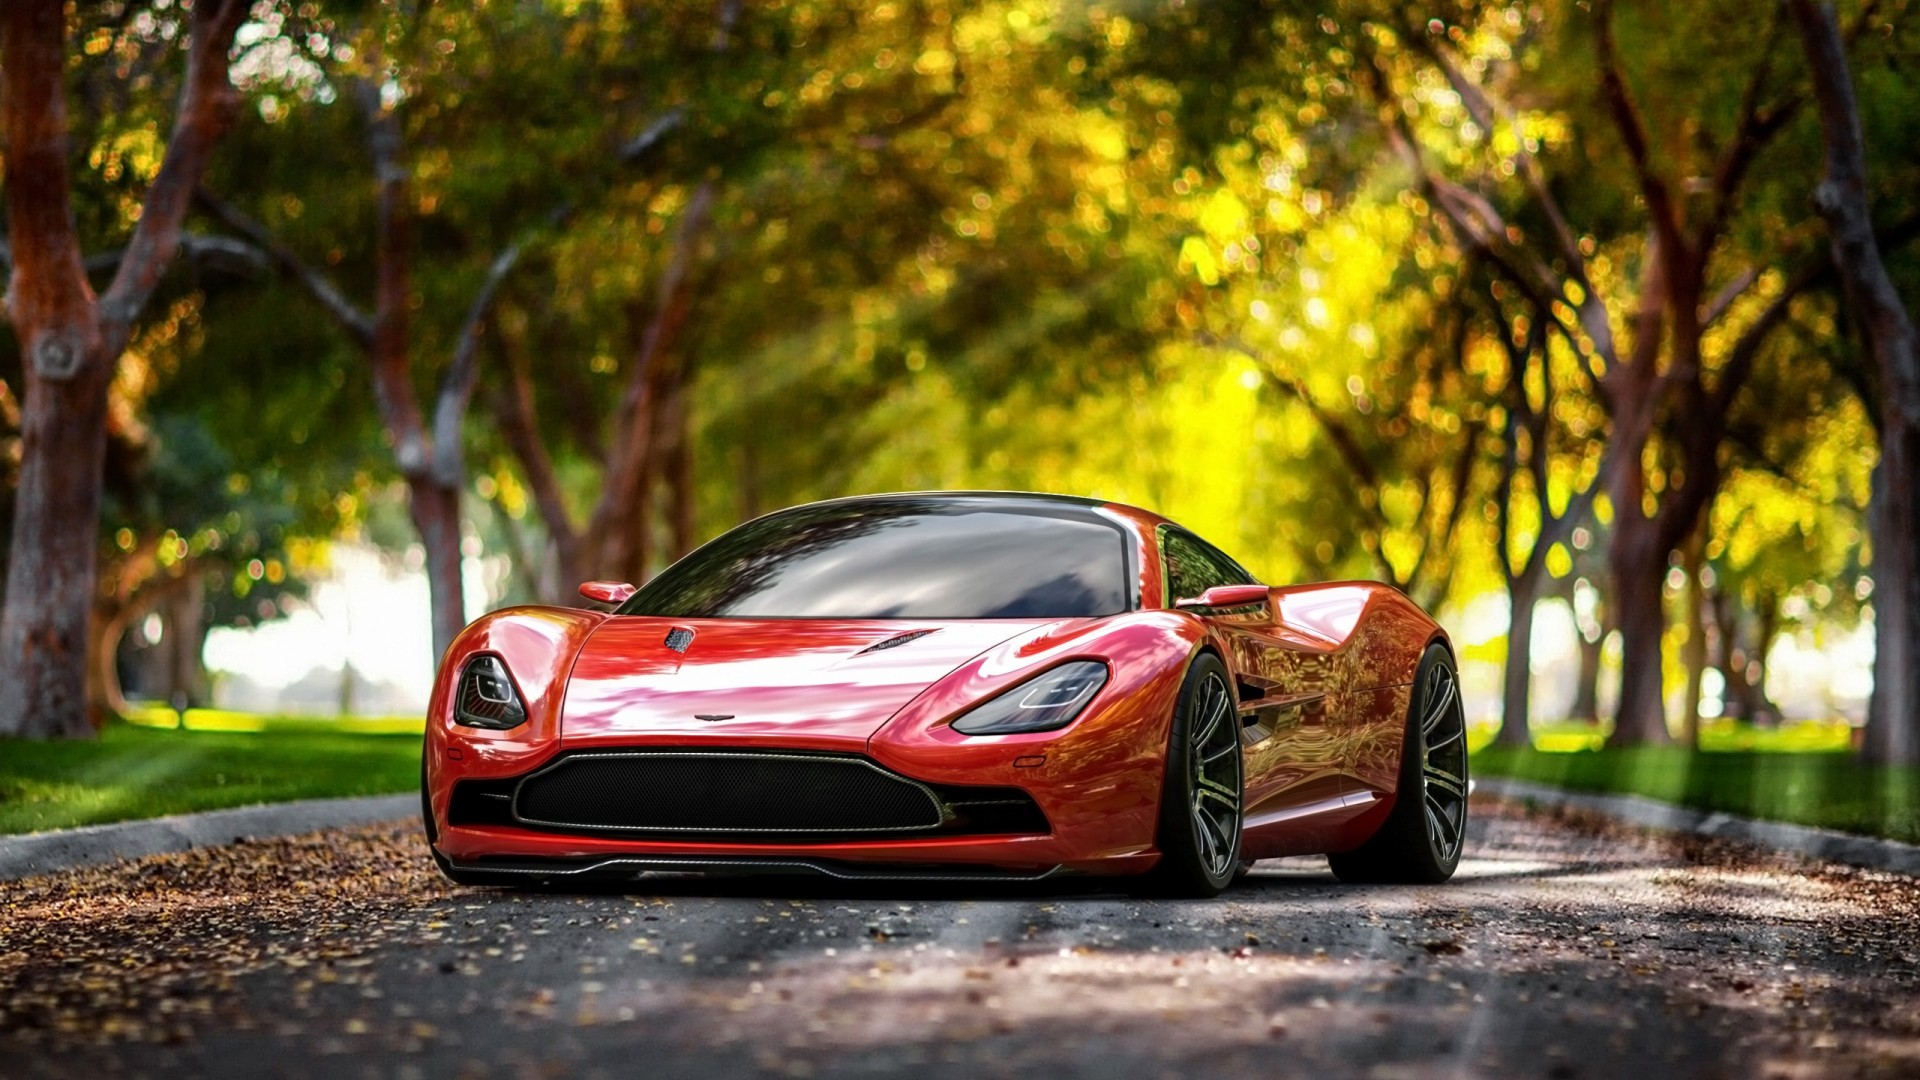 Aston Martin DBC, 4k, HD wallpaper, supercar, Aston Martin, sports car, luxury cars, concept, red, leaves, autumn (horizontal)